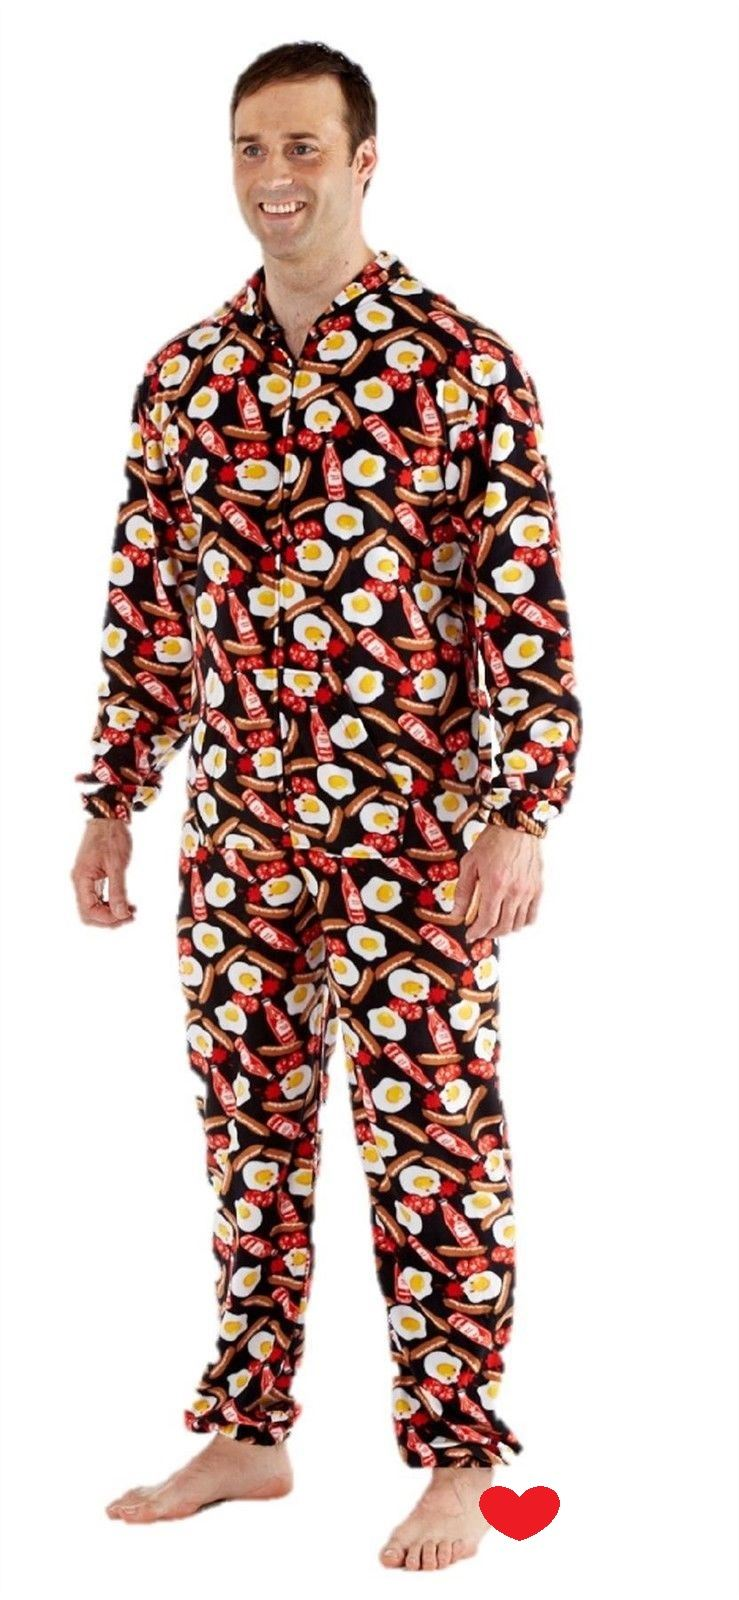 mens onesie all in one pyjama pajama one piece romper s m. Black Bedroom Furniture Sets. Home Design Ideas